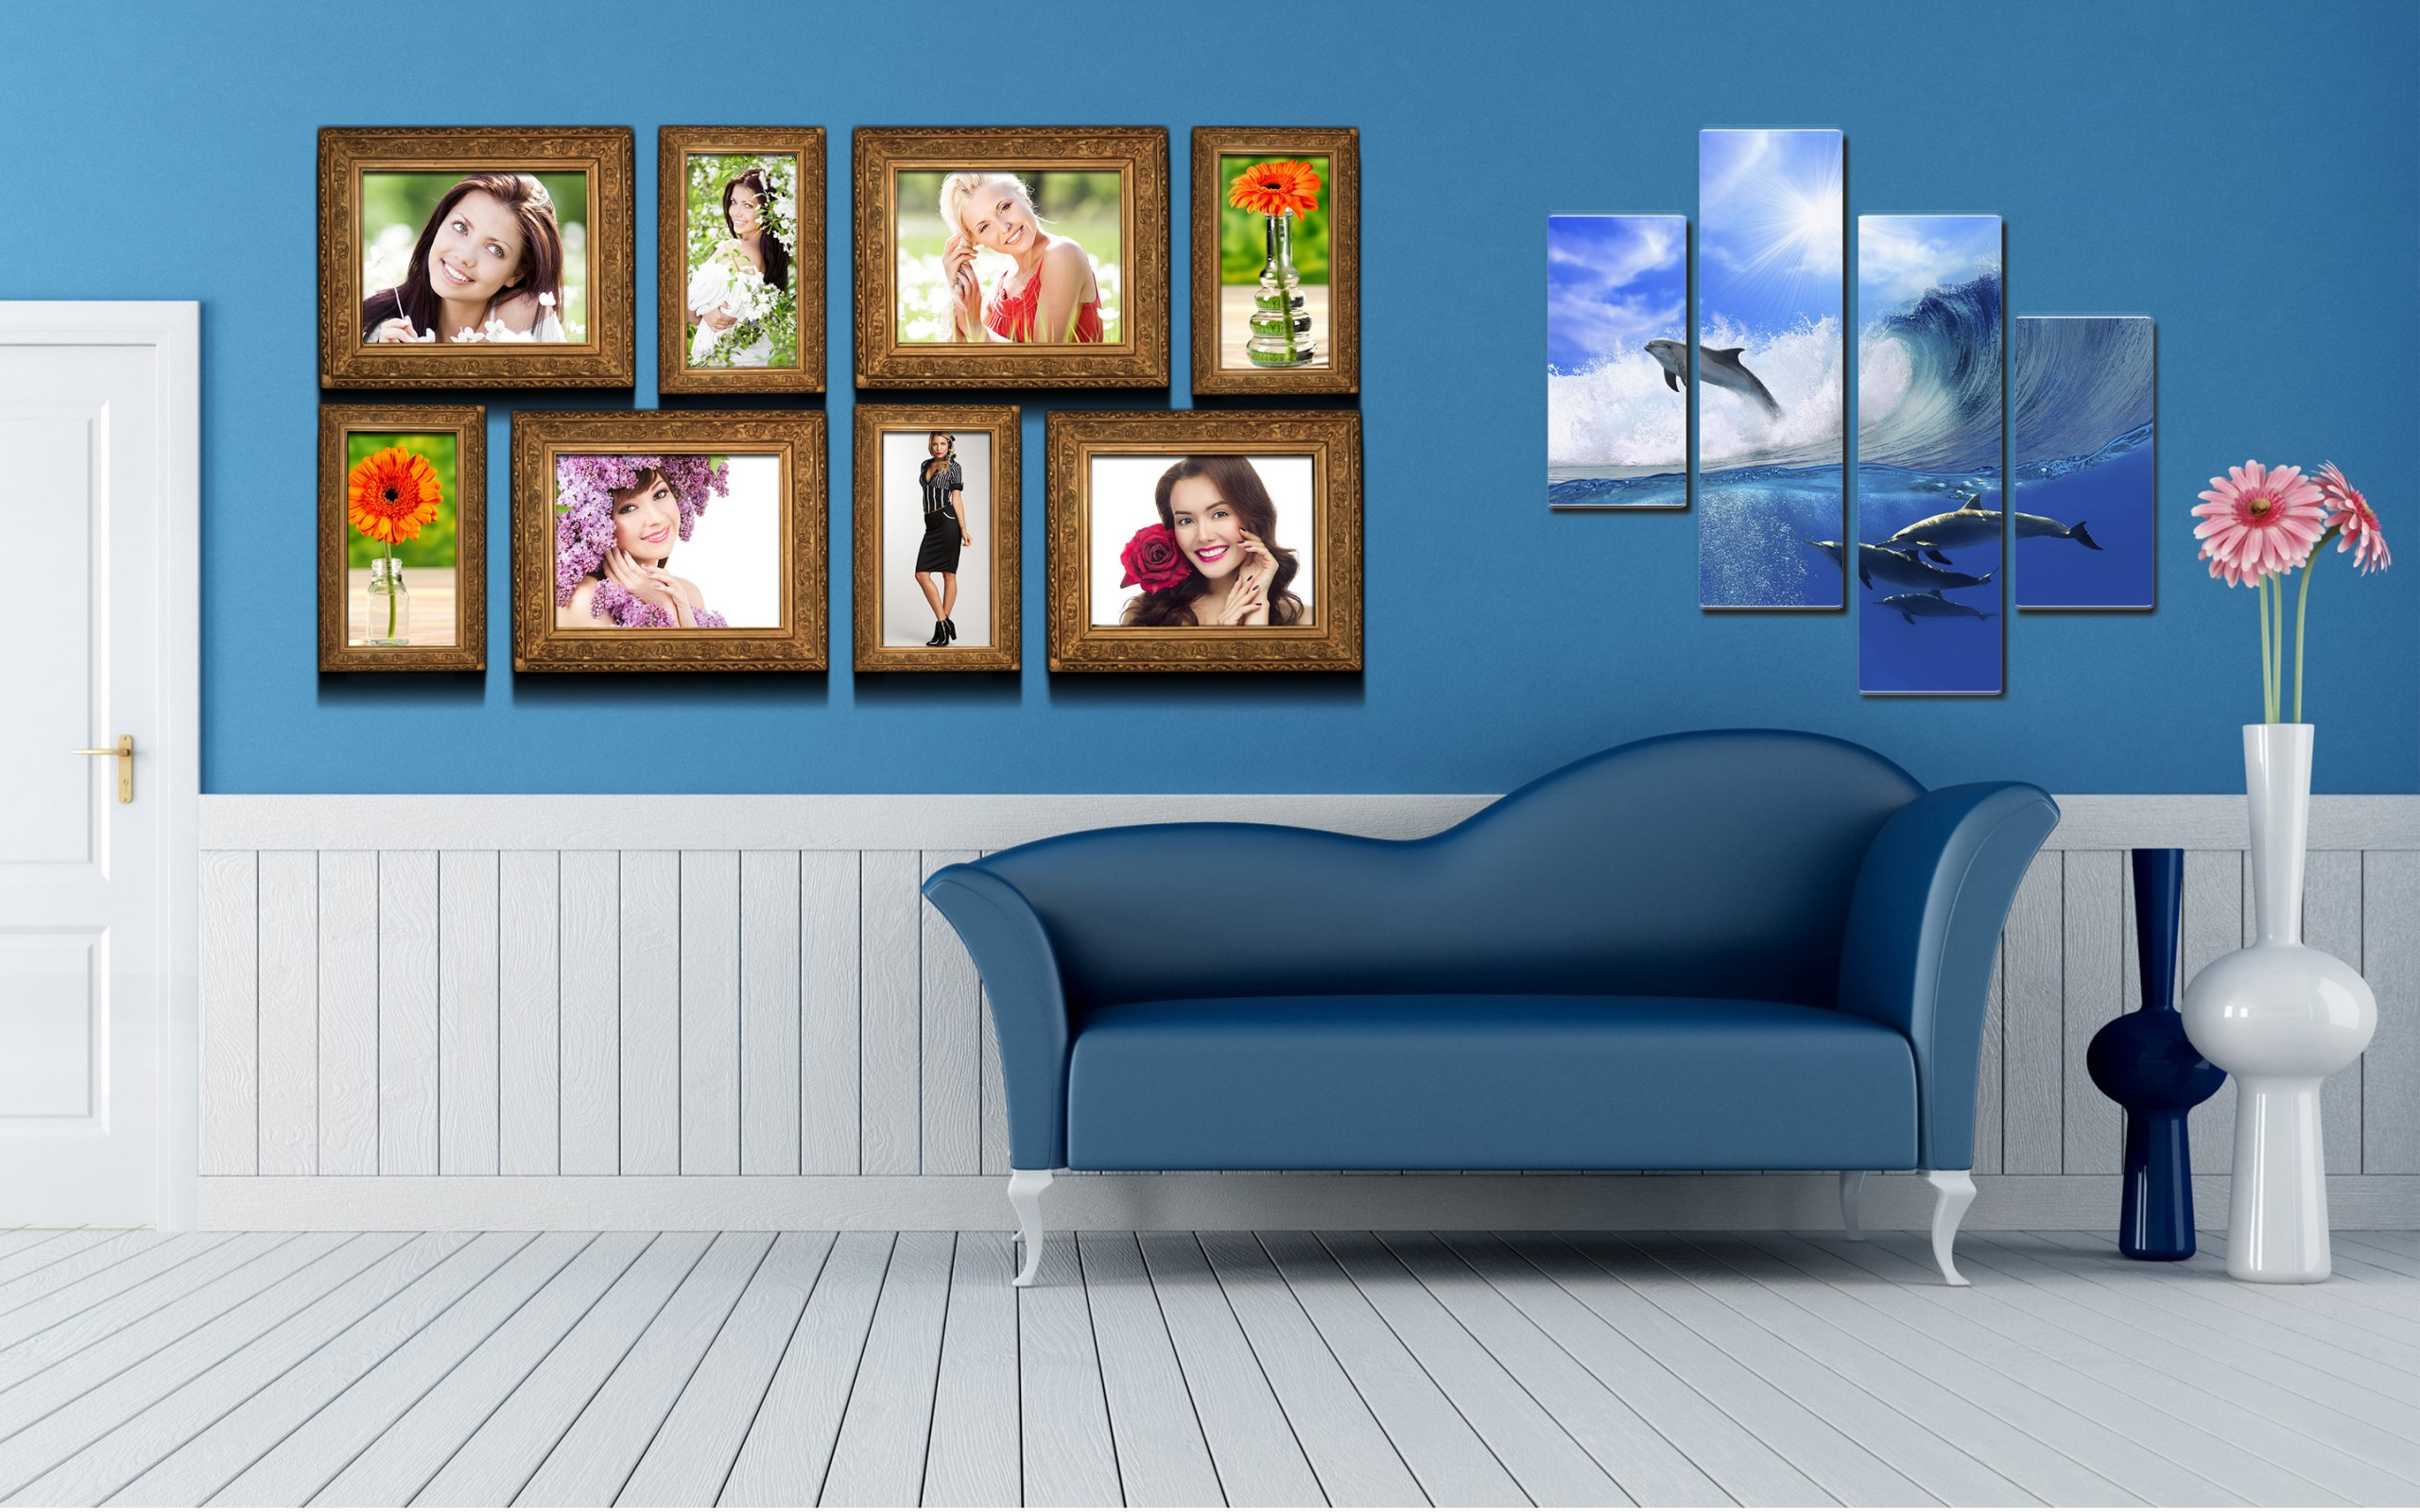 Interior sofa flowers vases pictures polyptych dolphins for Wallpaper home photos